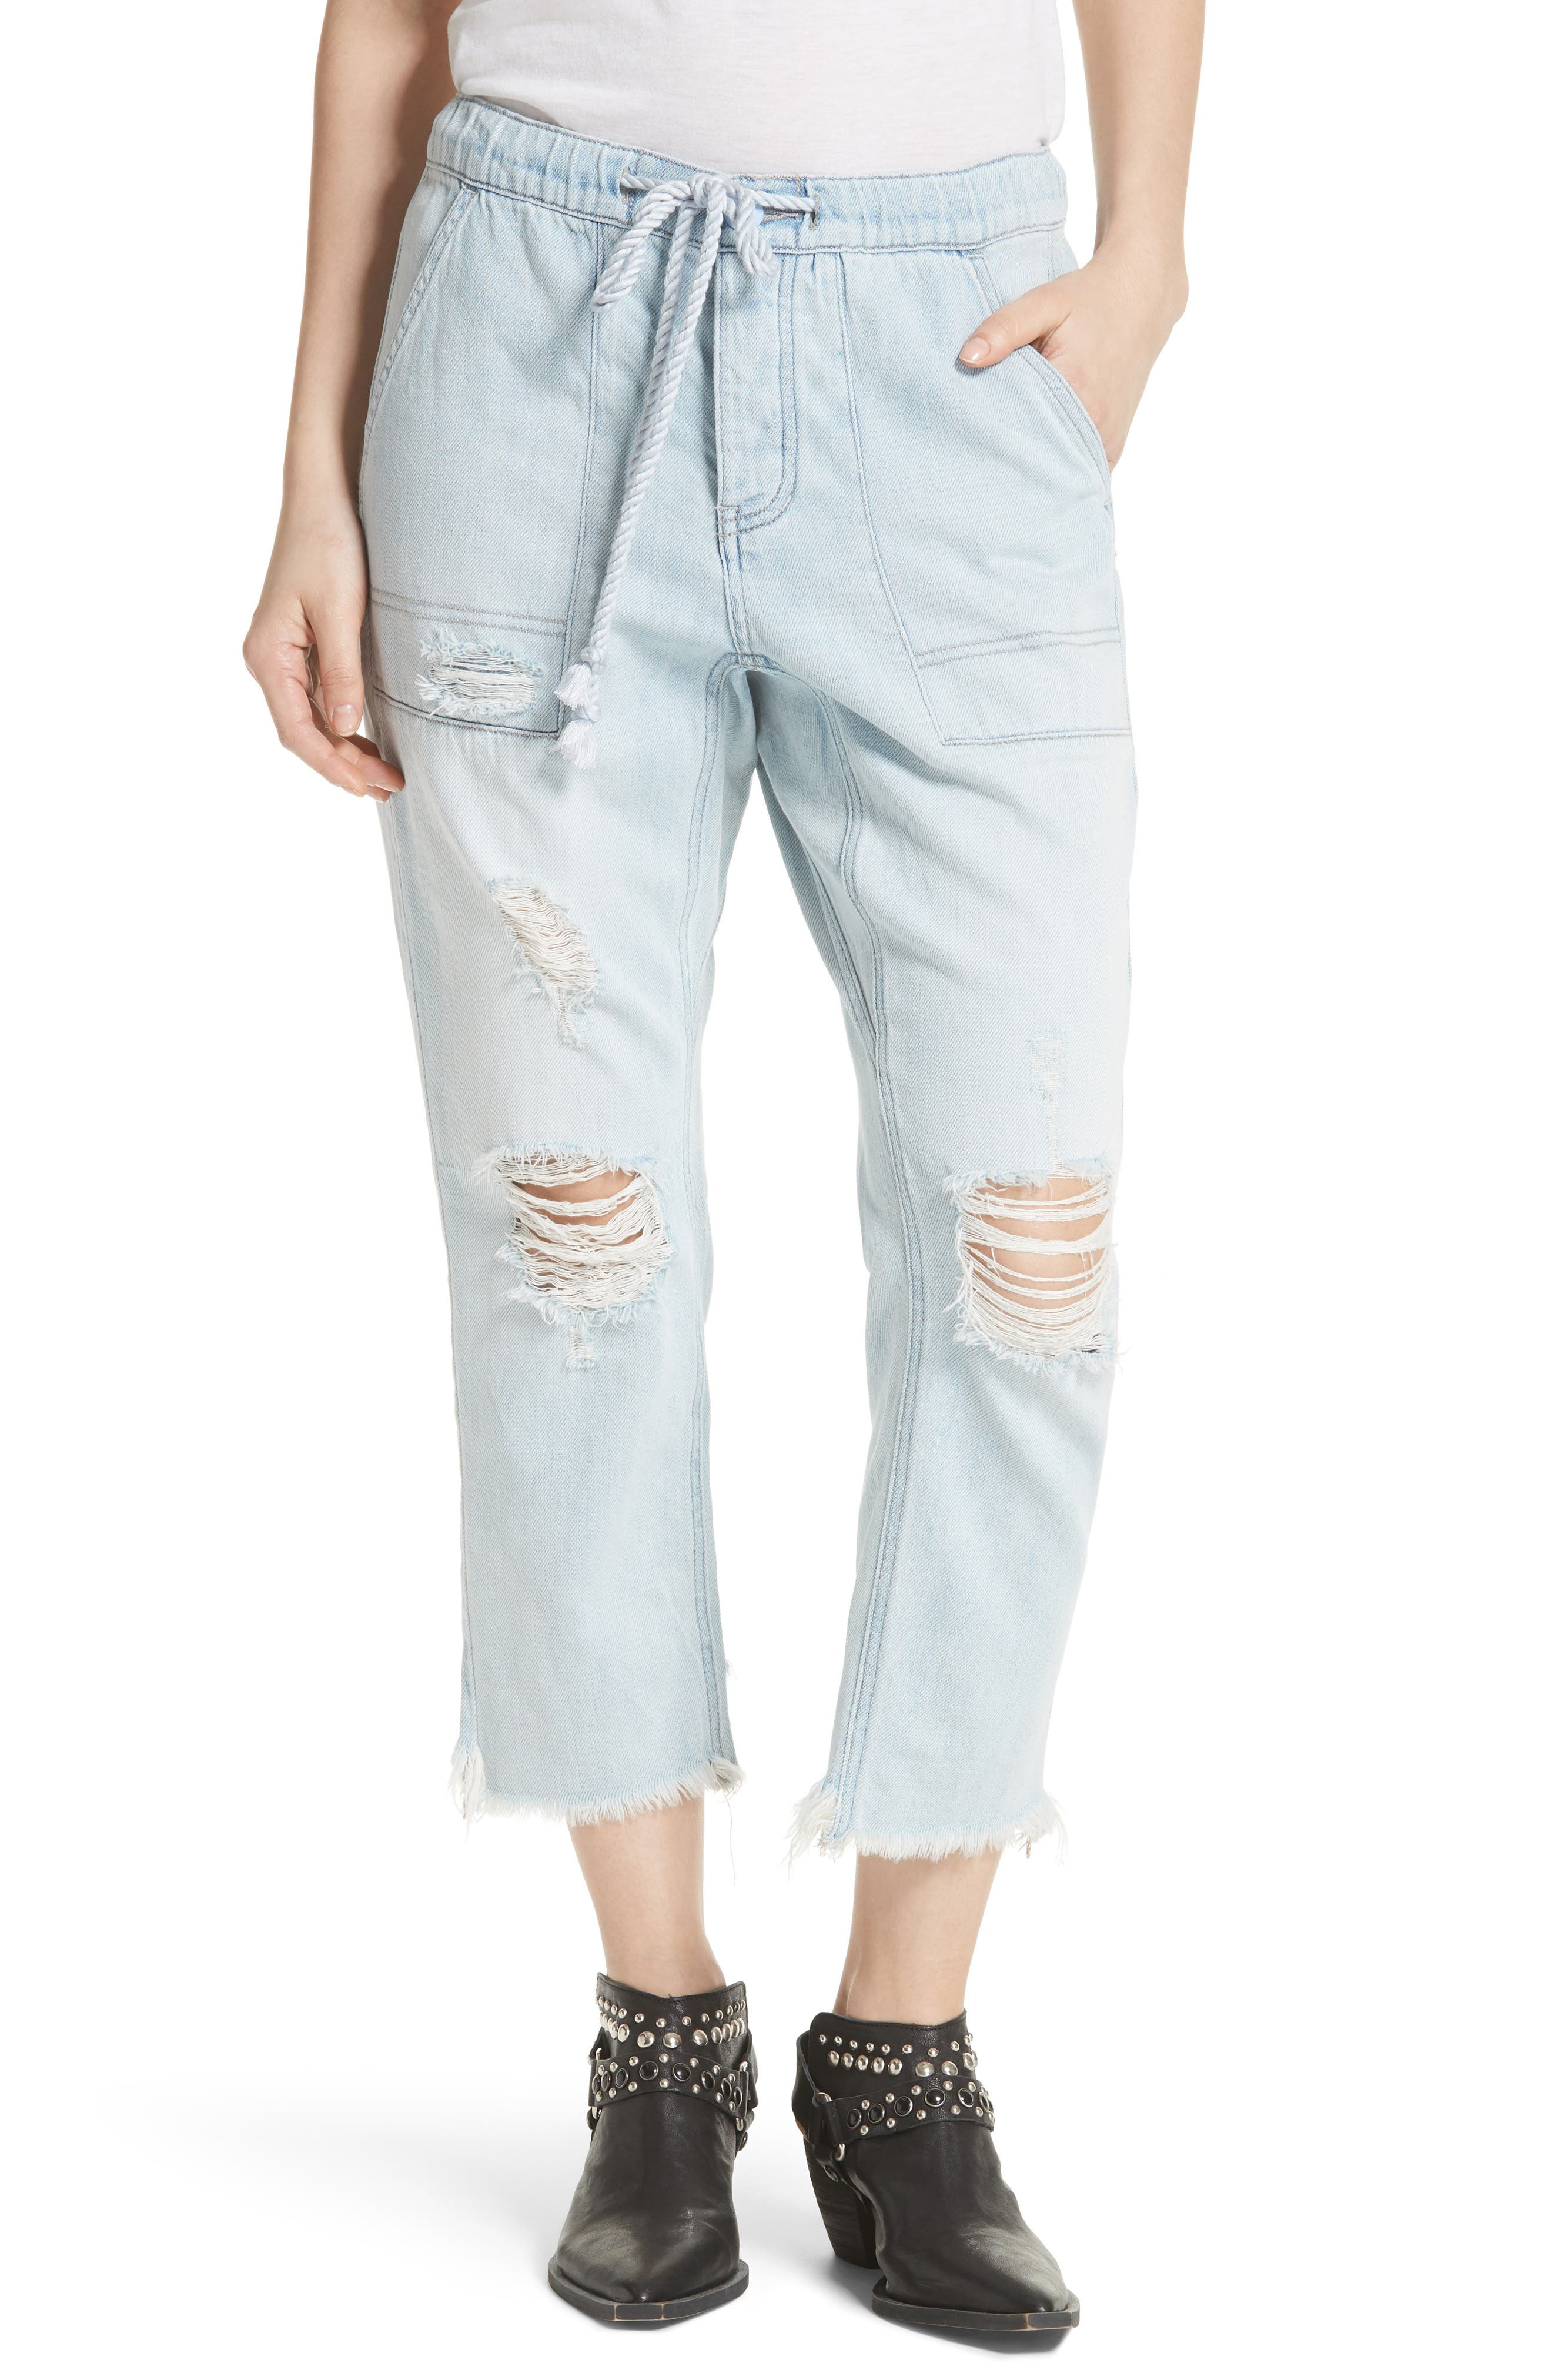 Northern Sky Ripped Crop Jeans,                         Main,                         color, 400